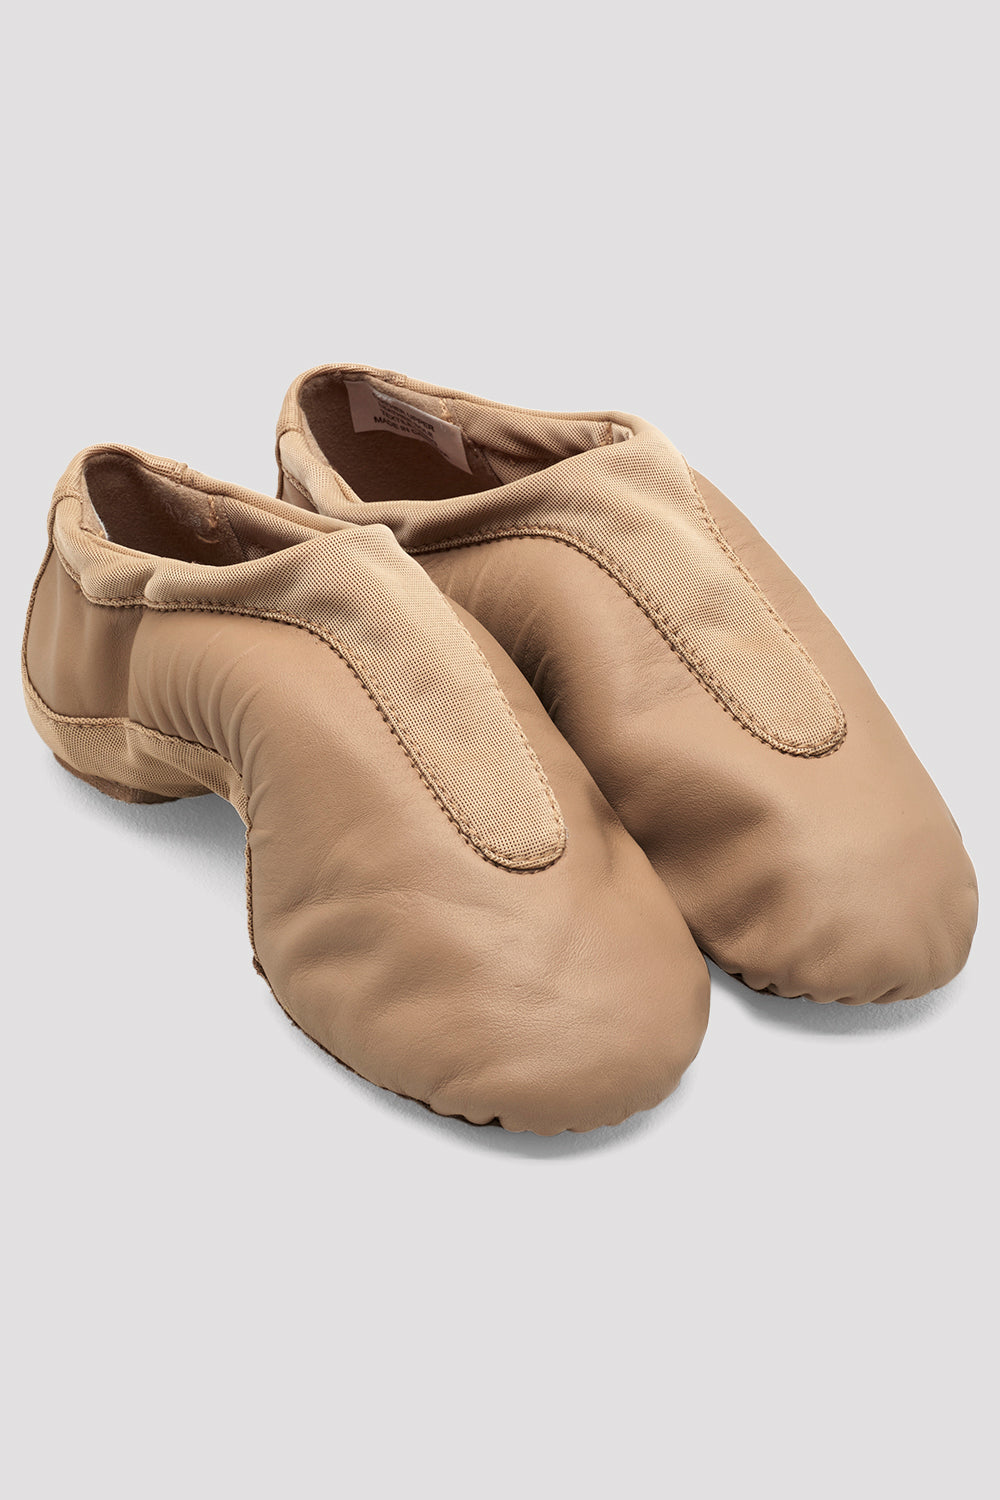 Girls Pulse Leather Jazz Shoes - BLOCH US